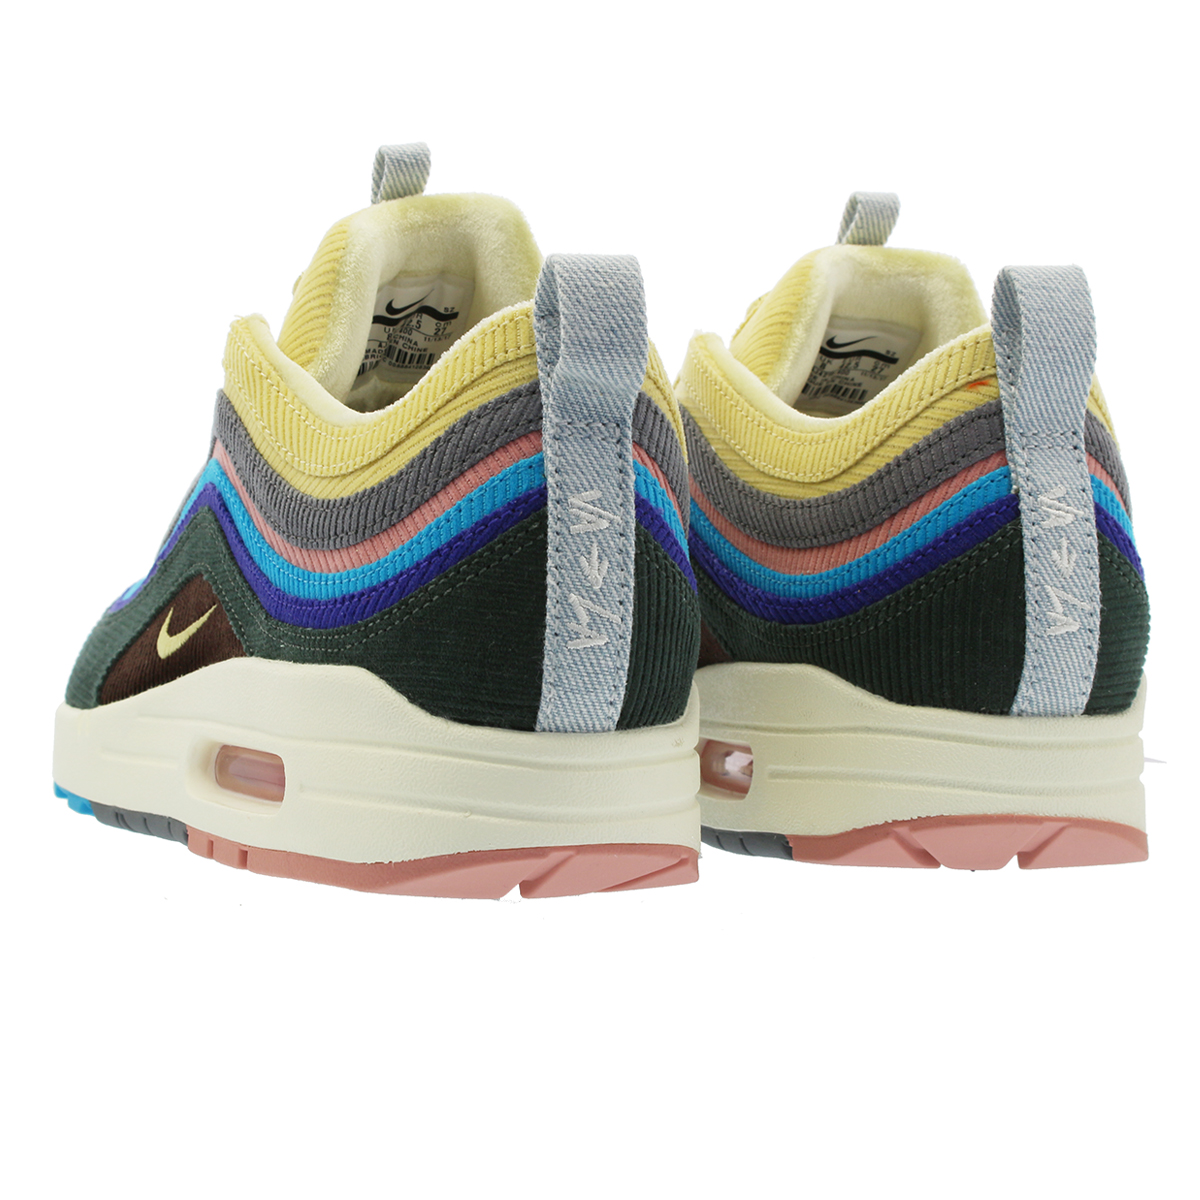 brand new bf55f a1091 air max 97 sean weatherspoon for sale nz